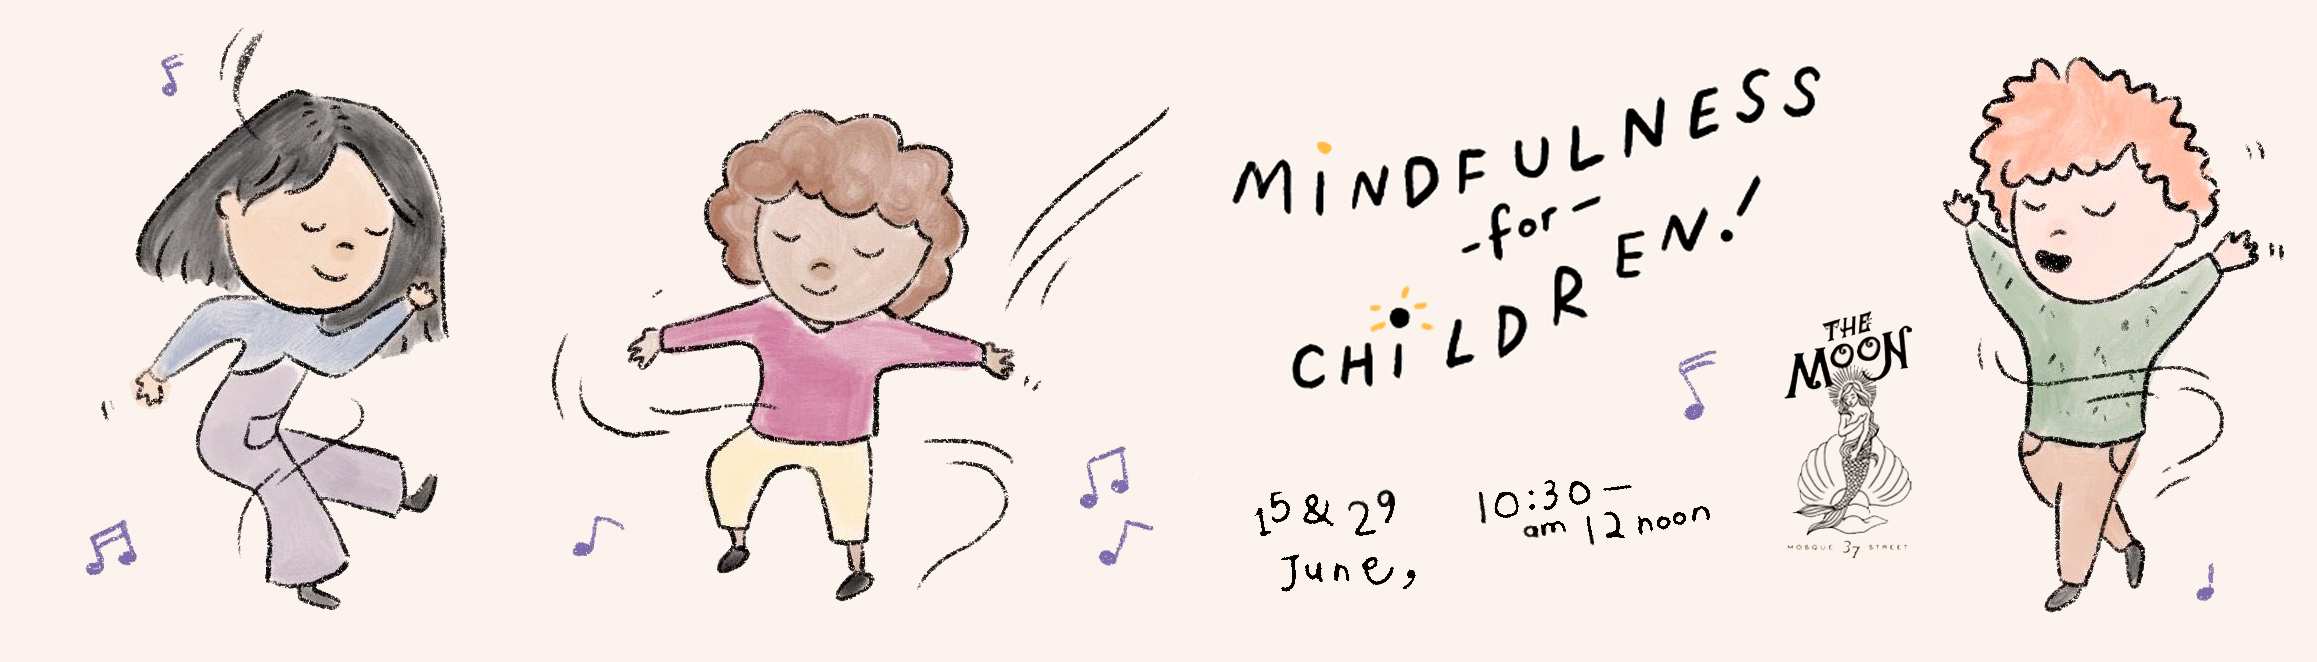 Mindfulness for Children -fb.jpg